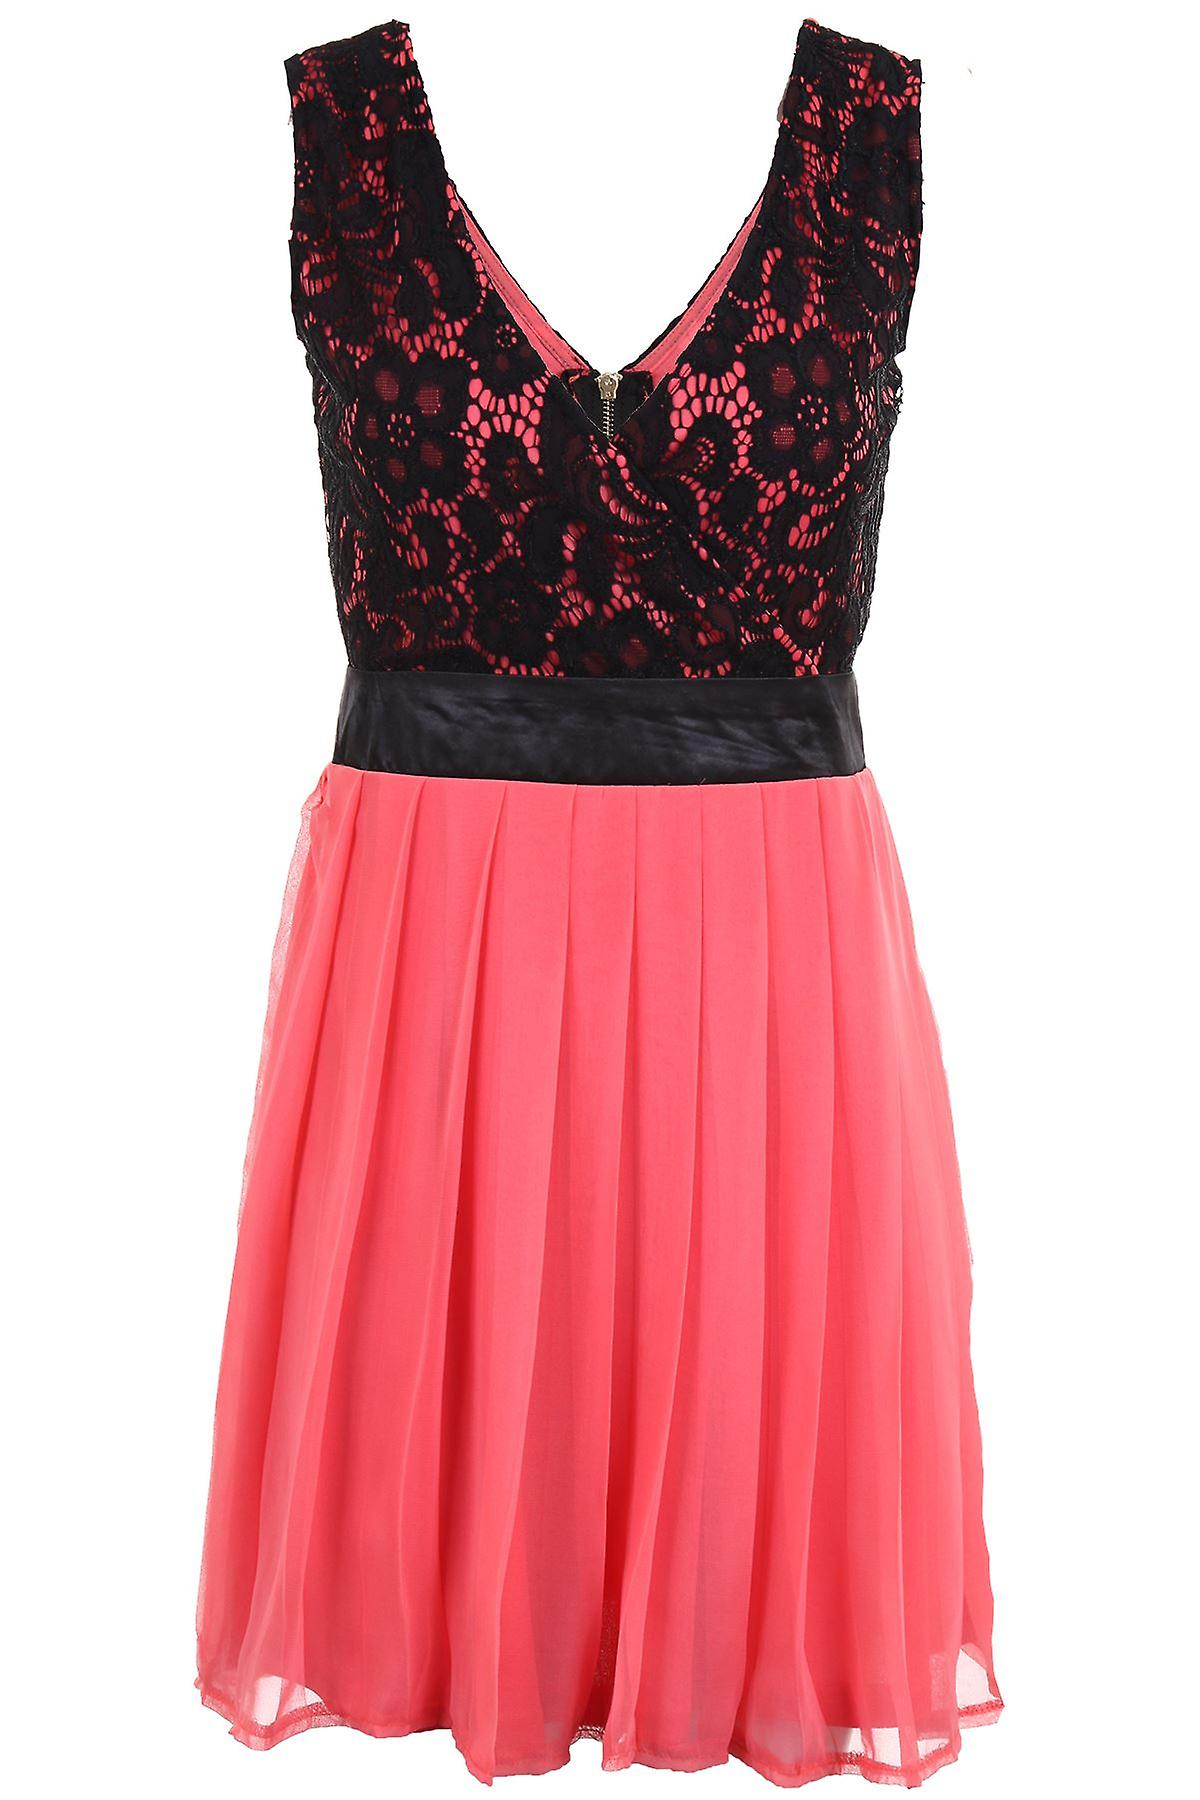 Ladies Pleated Contrast Floral Lace Wrapped Front Low V neck Zip Back Party Dress